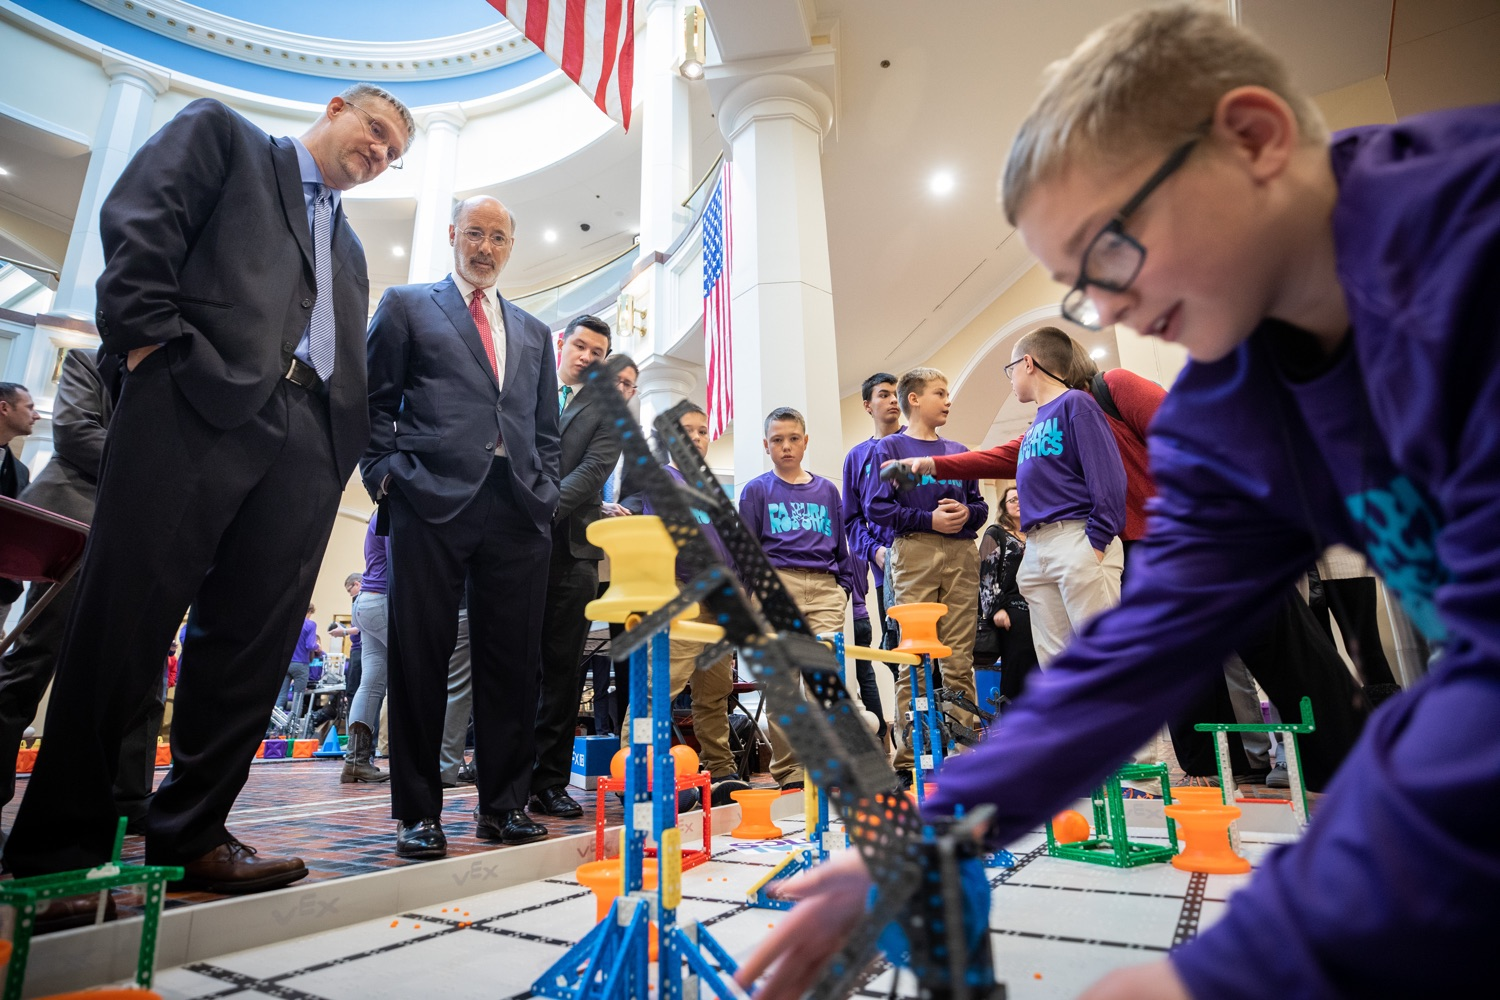 Governor Wolf and Rural Students Celebrate PAsmart Success for Science and Technology Education